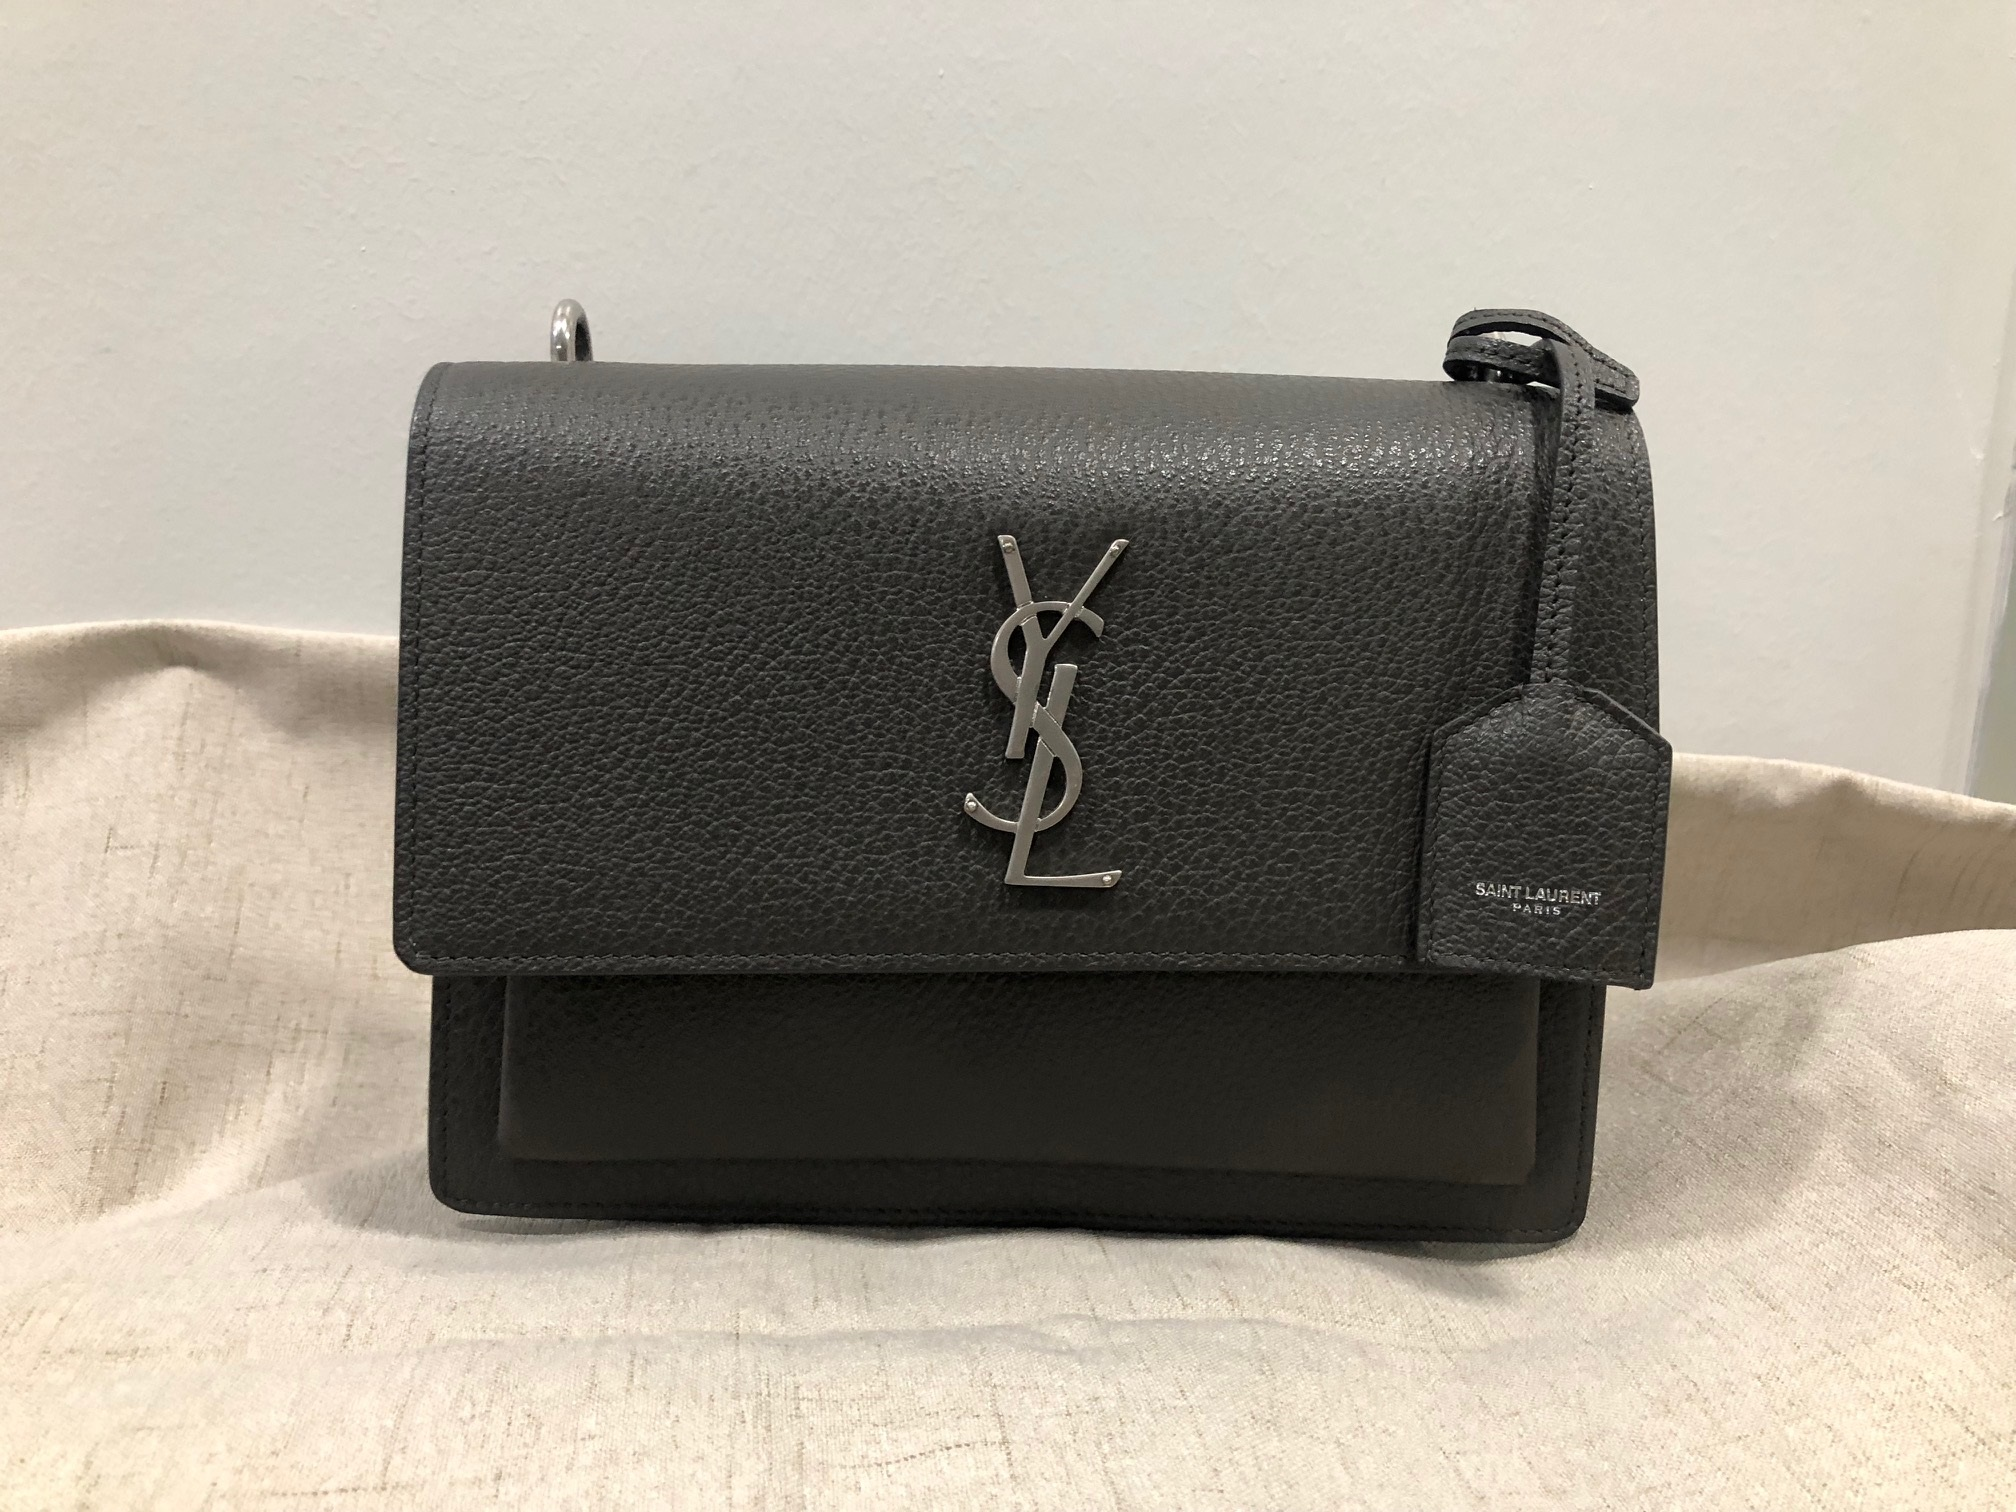 38aba6087ada YSL Sunset Bag Measurements   Medium Size (22cm x 14cm x 8cm) Condition    9.9 10 Color Material   Grained Leather Grey As Good As New. Comes with  leather ...